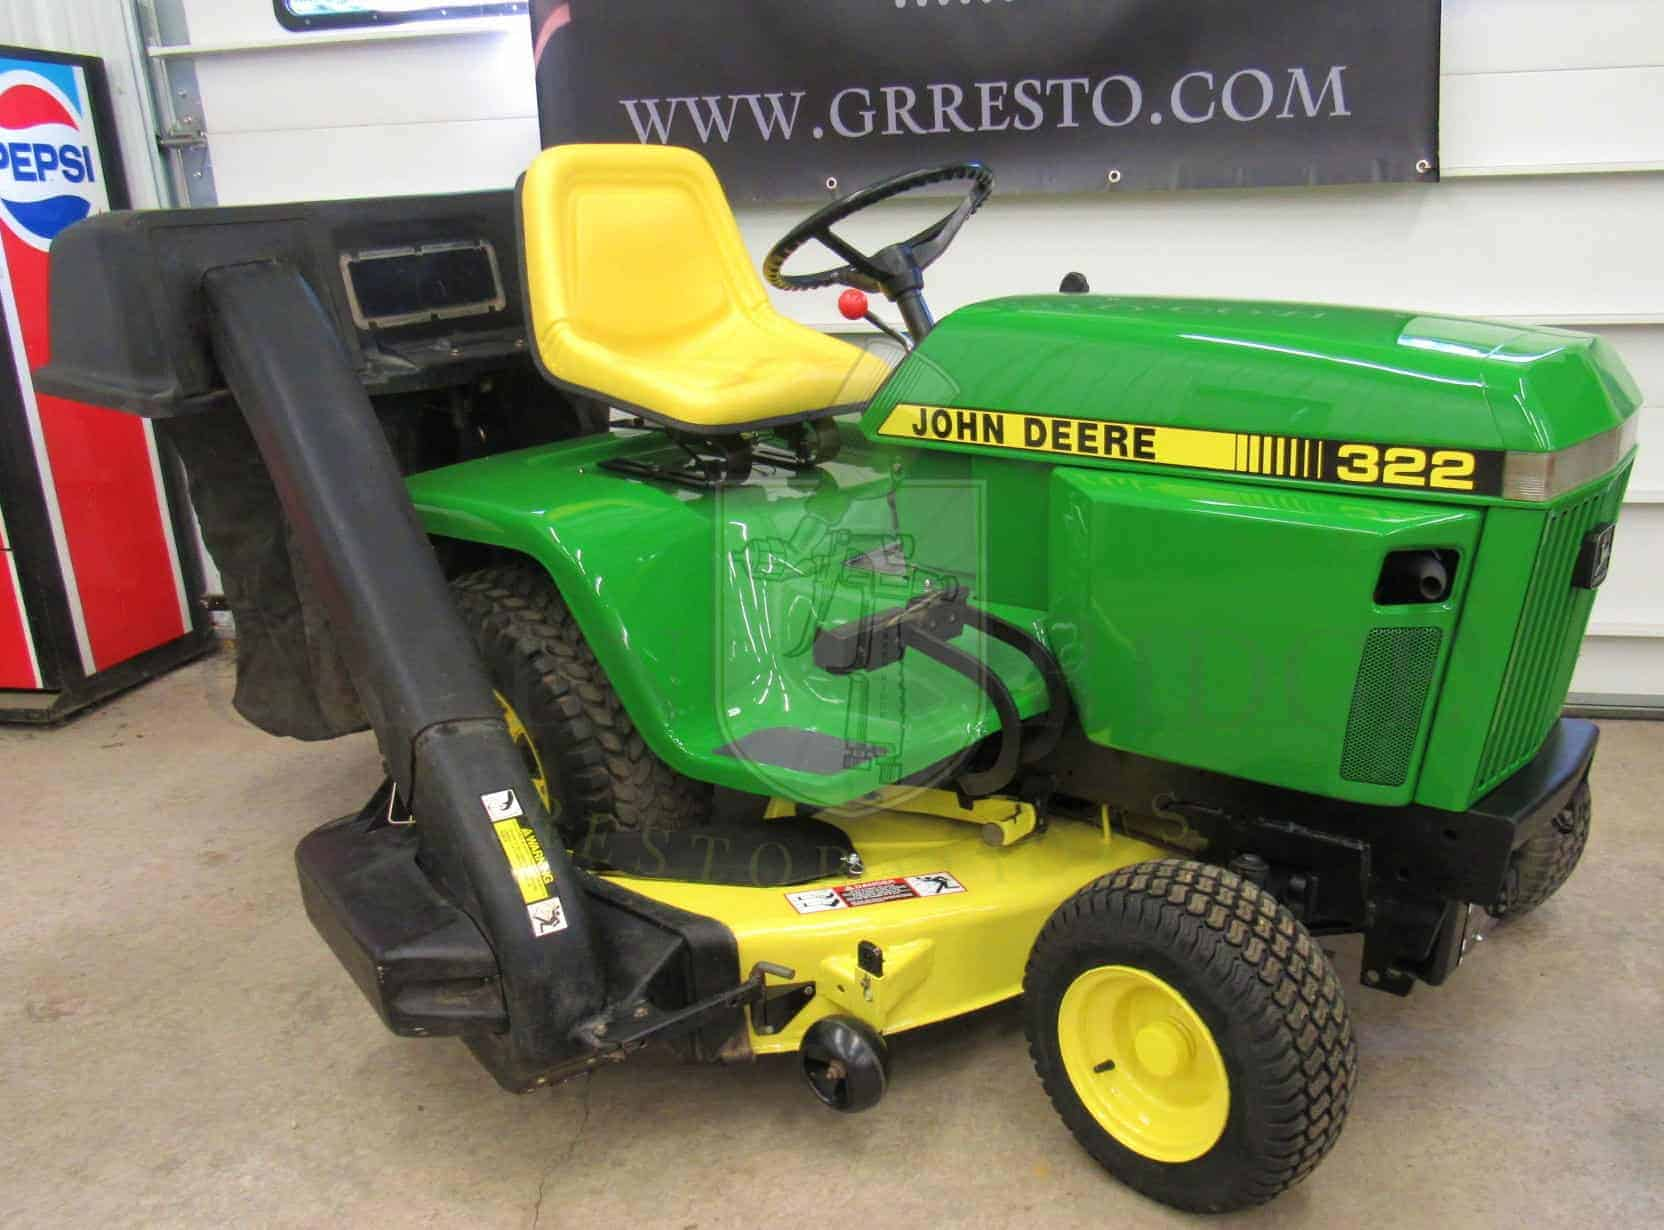 John Deere 322 For Sale 1990 Lawn And Garden Tractor In New York